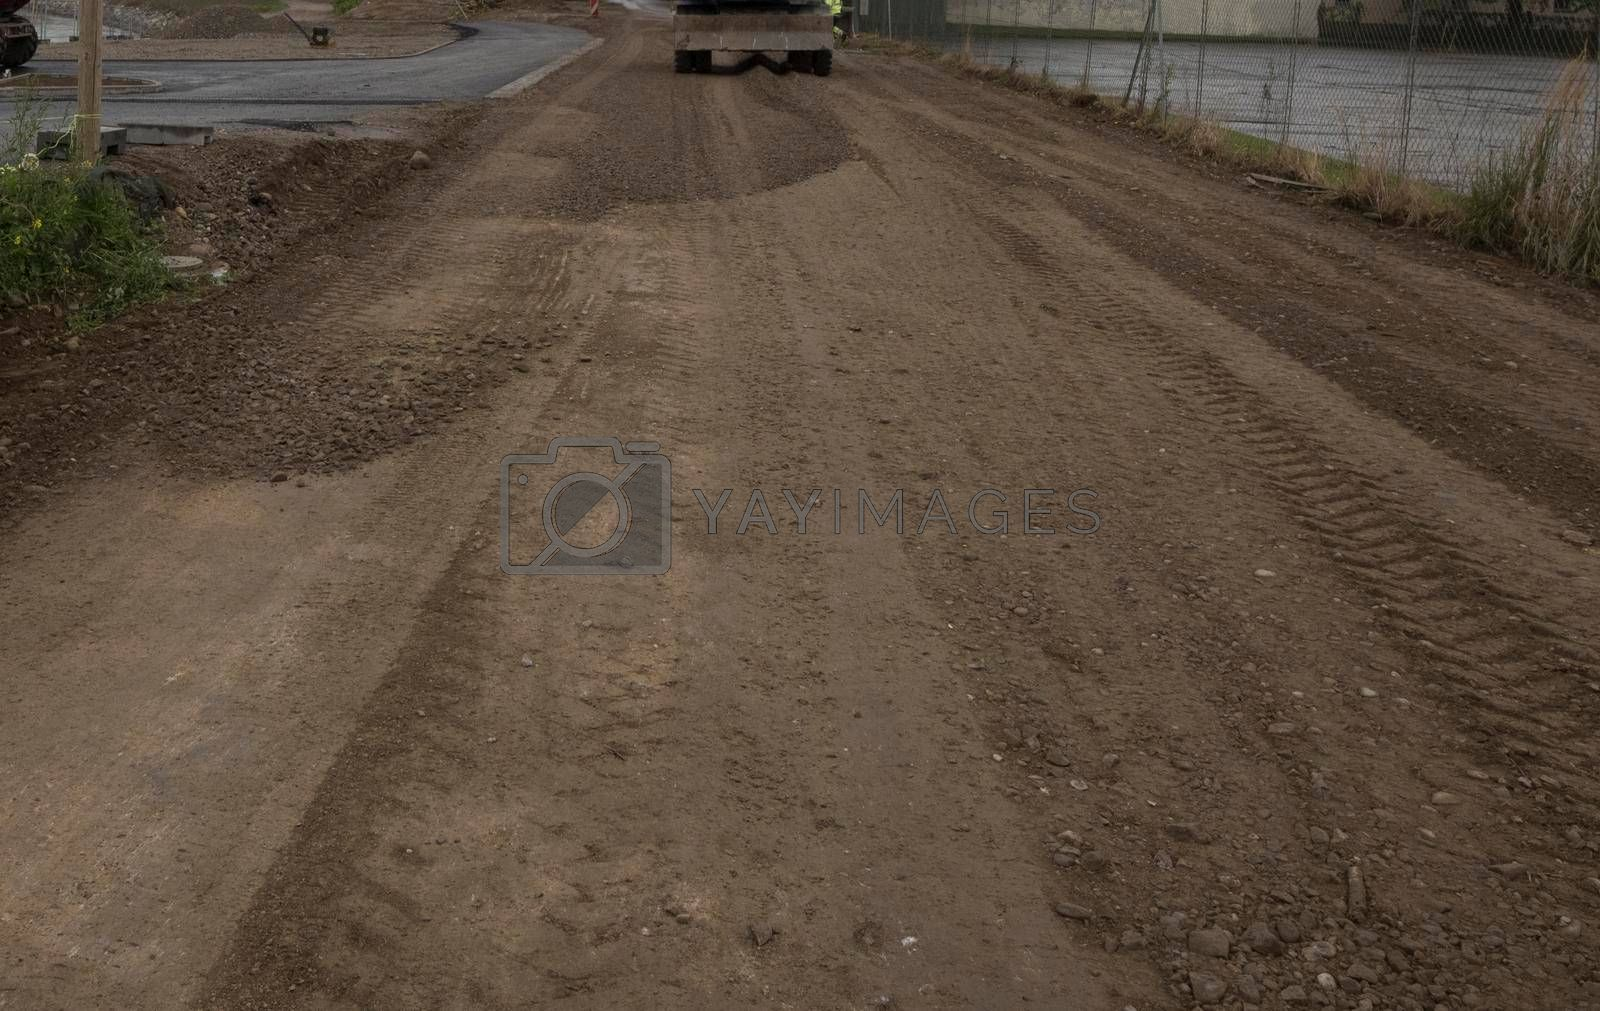 unpaved road or dirt road, traffic and transport at construction site